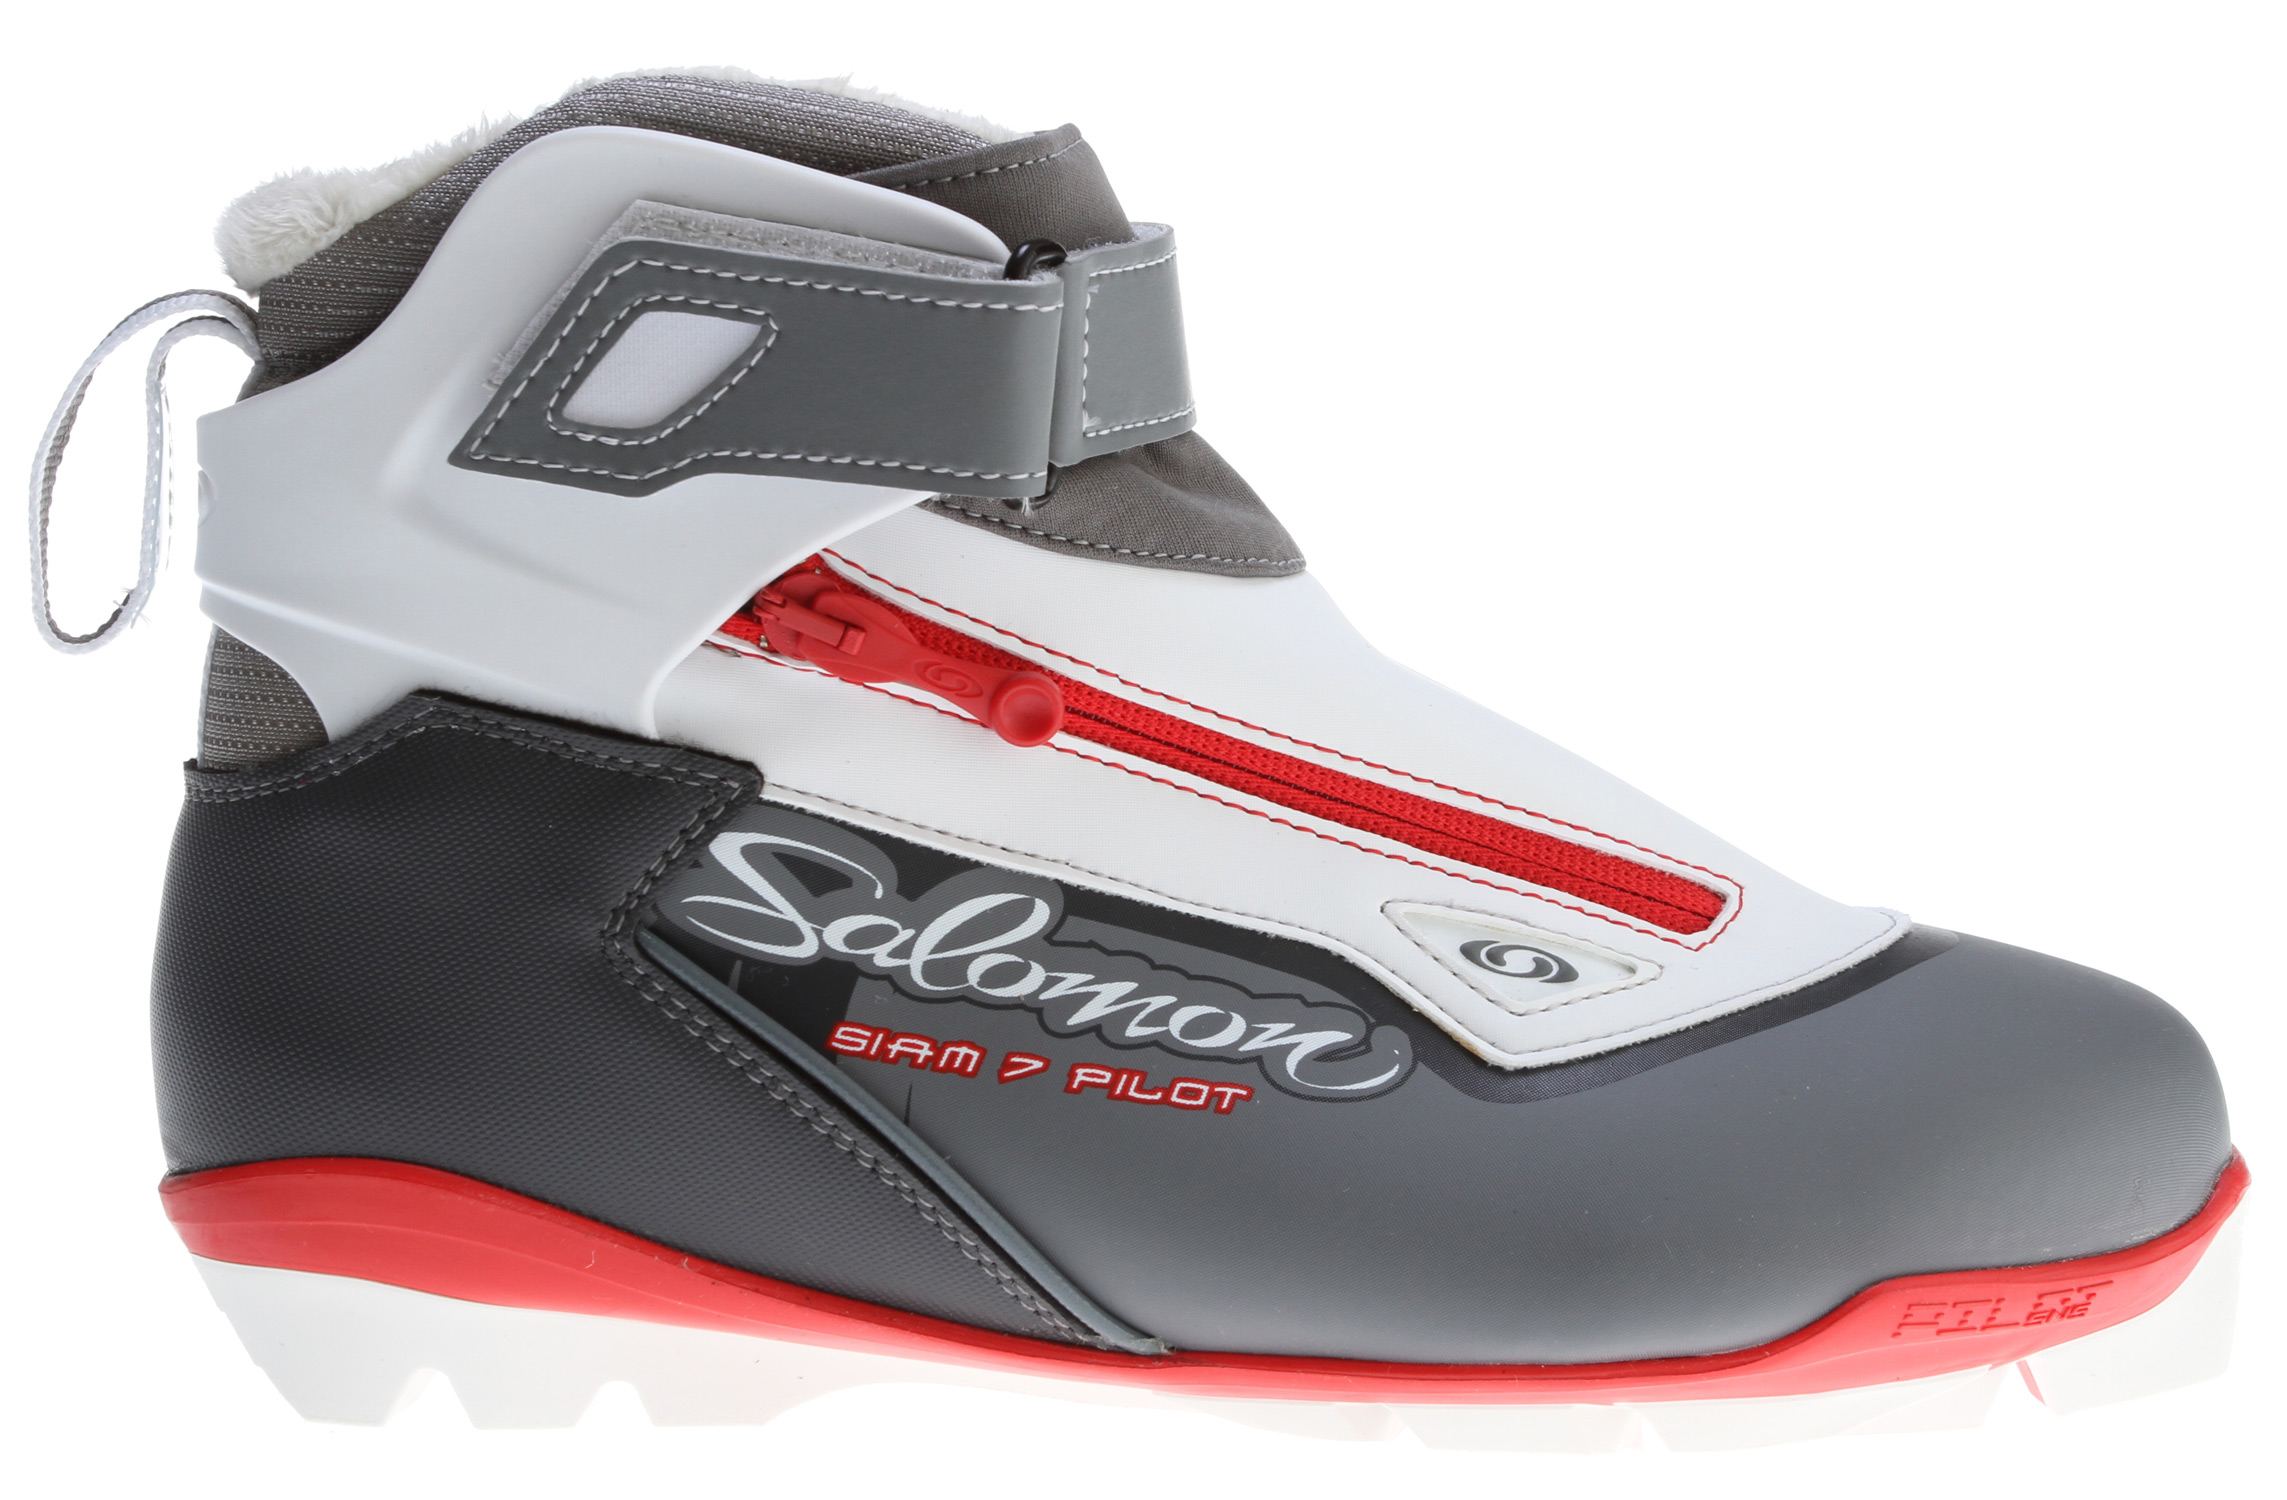 Ski Key Features of the Salomon Siam 7 Pilot Cross Country Ski Boots: SNS PILOT2 Touring outsole Weight 900 g/pair (5) Cuff Velcro strapped adjustable cuff Liner Custom Fit Thinsulate Faux fur Lacing Quicklace Protection Lace cover with diagonal zip Women specific Salomon Touring Women fit Fleece lining Faux fur - $111.95